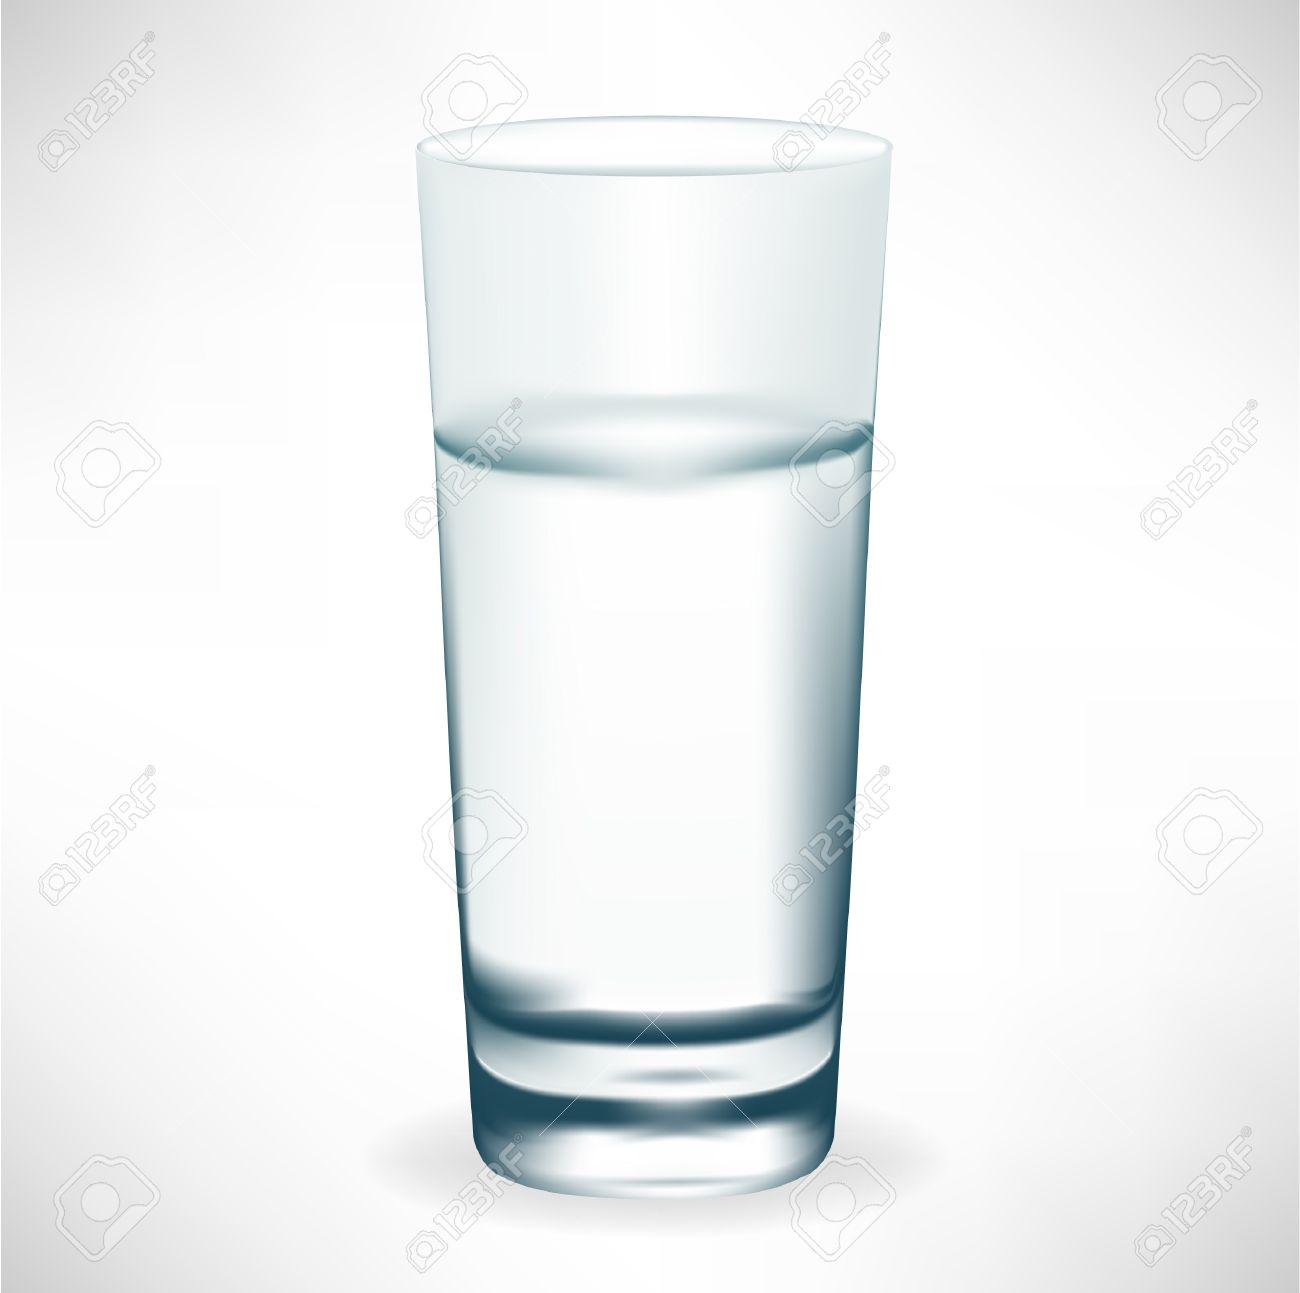 Hydrate for all day long success!